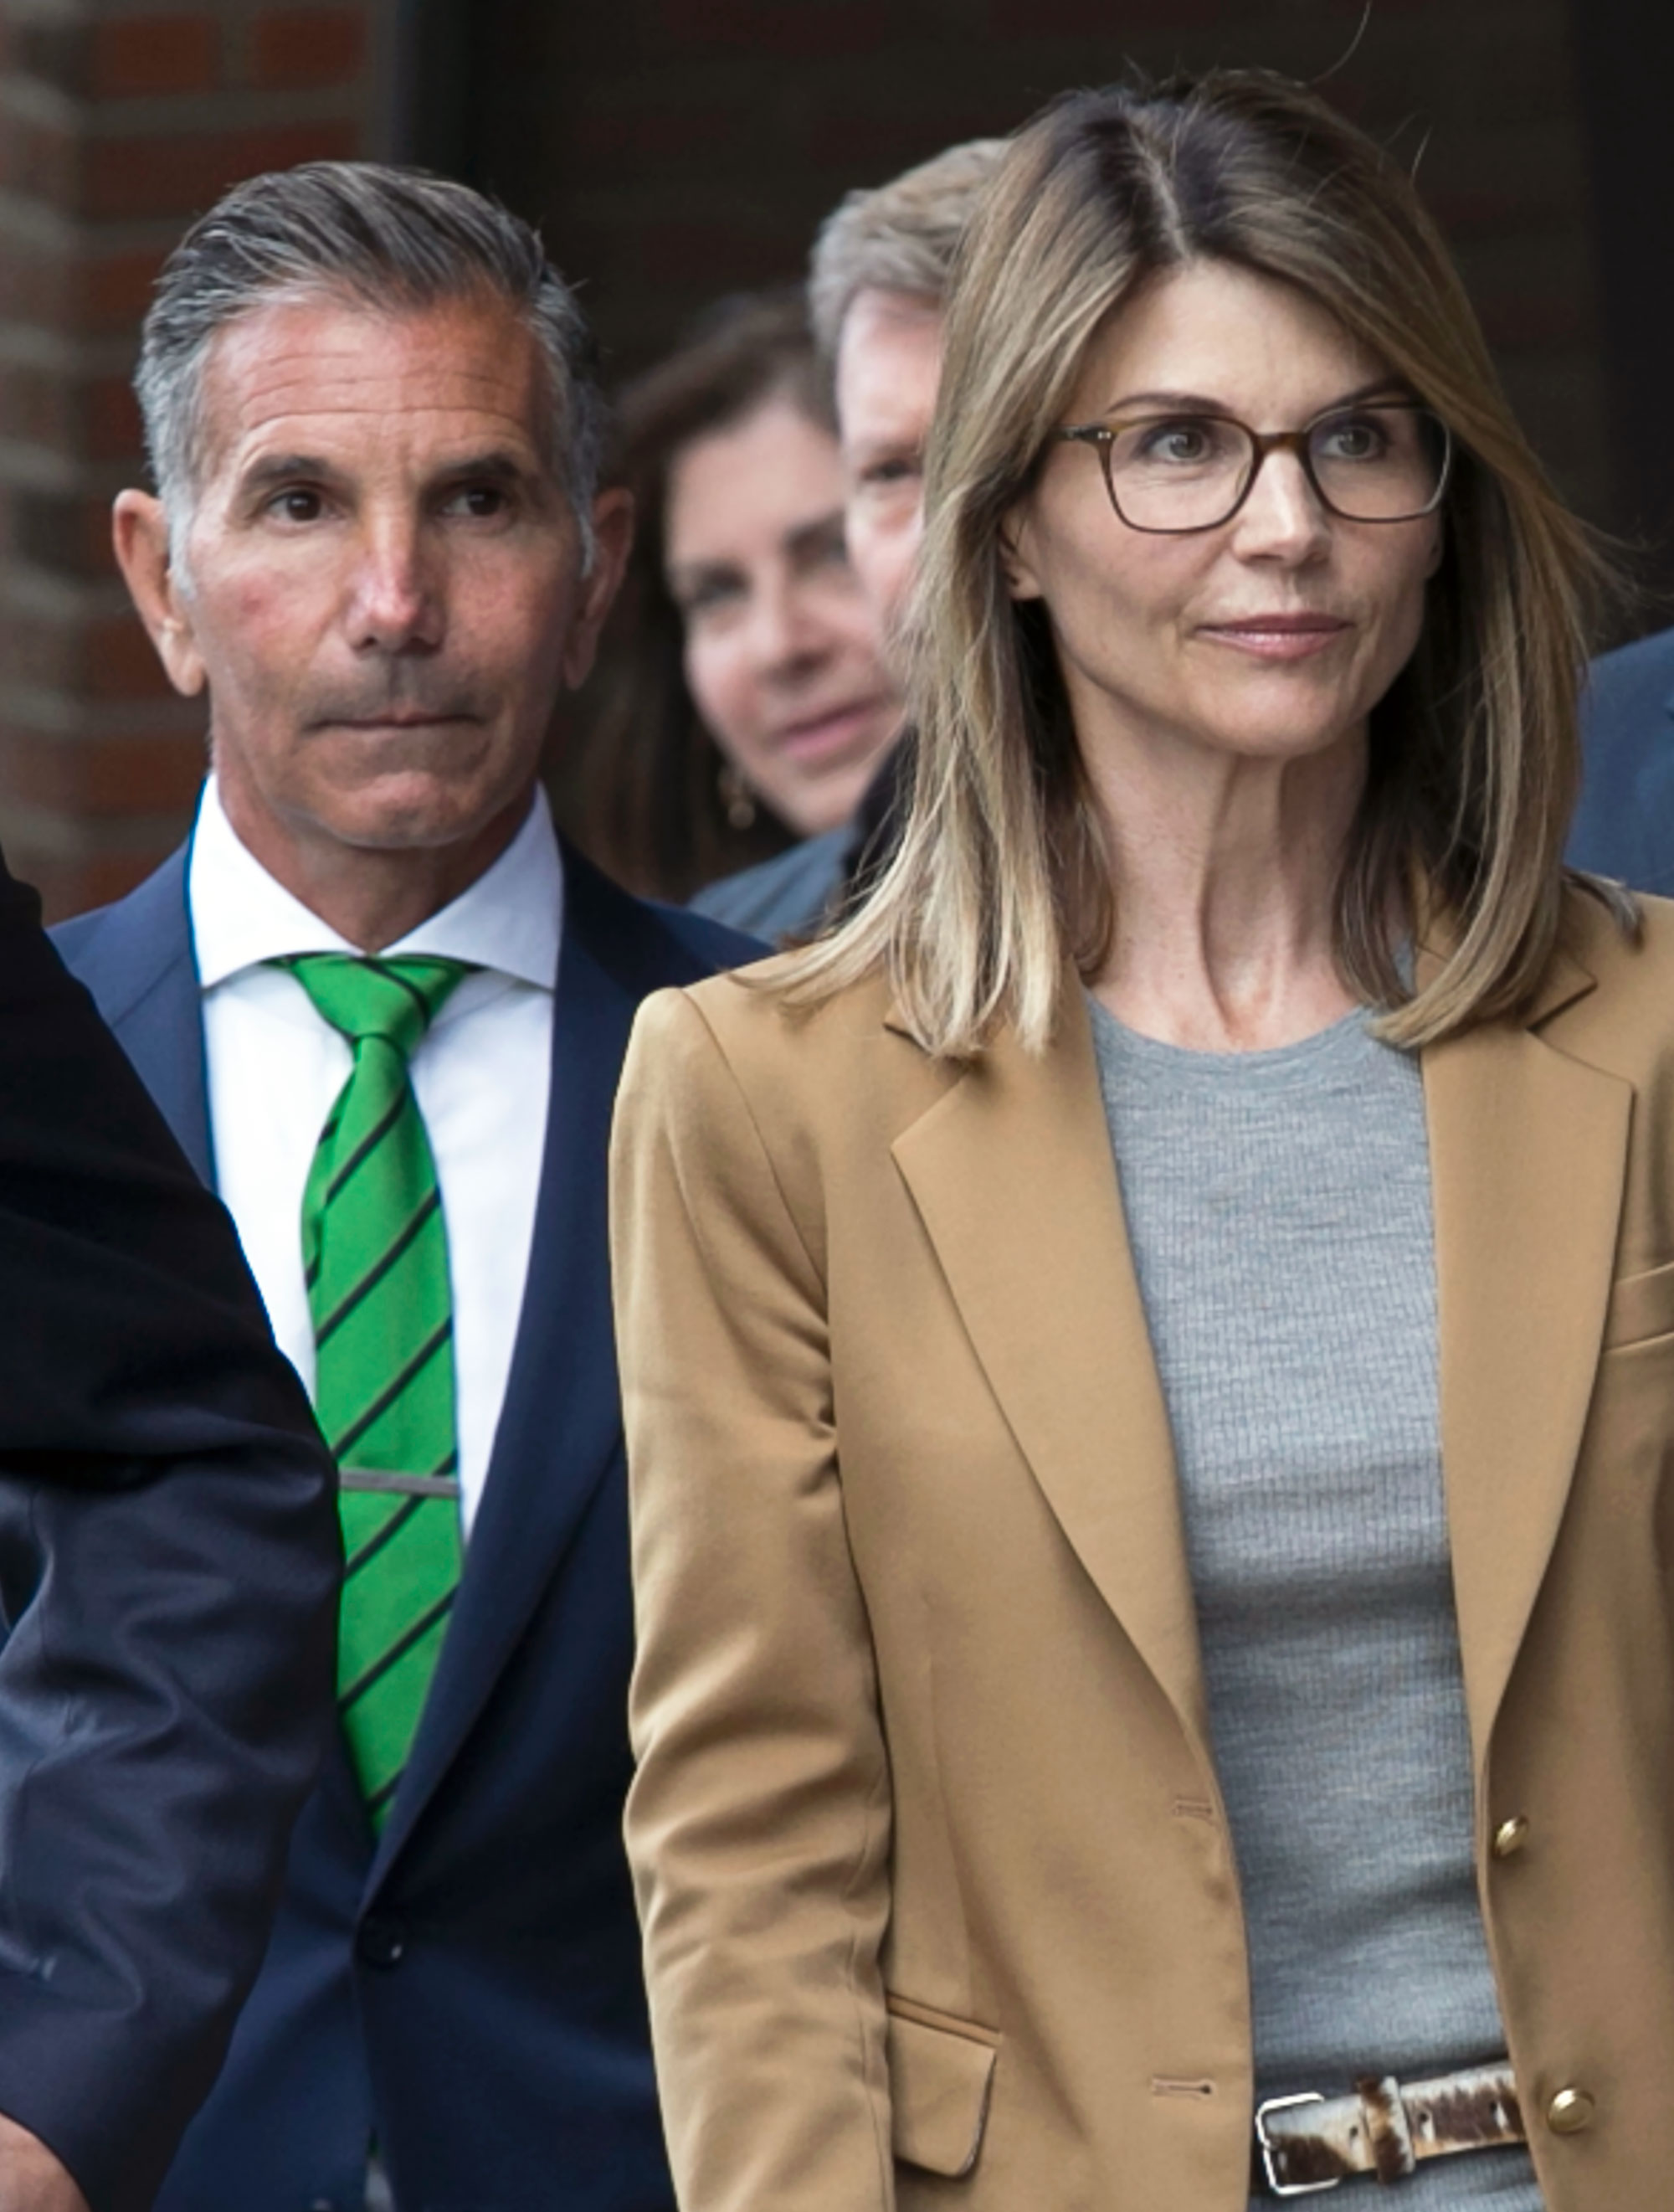 Lori Loughlin and Mossimo Giannulli Ask Judge to Reduce $1 Million Bonds in College Admissions Case